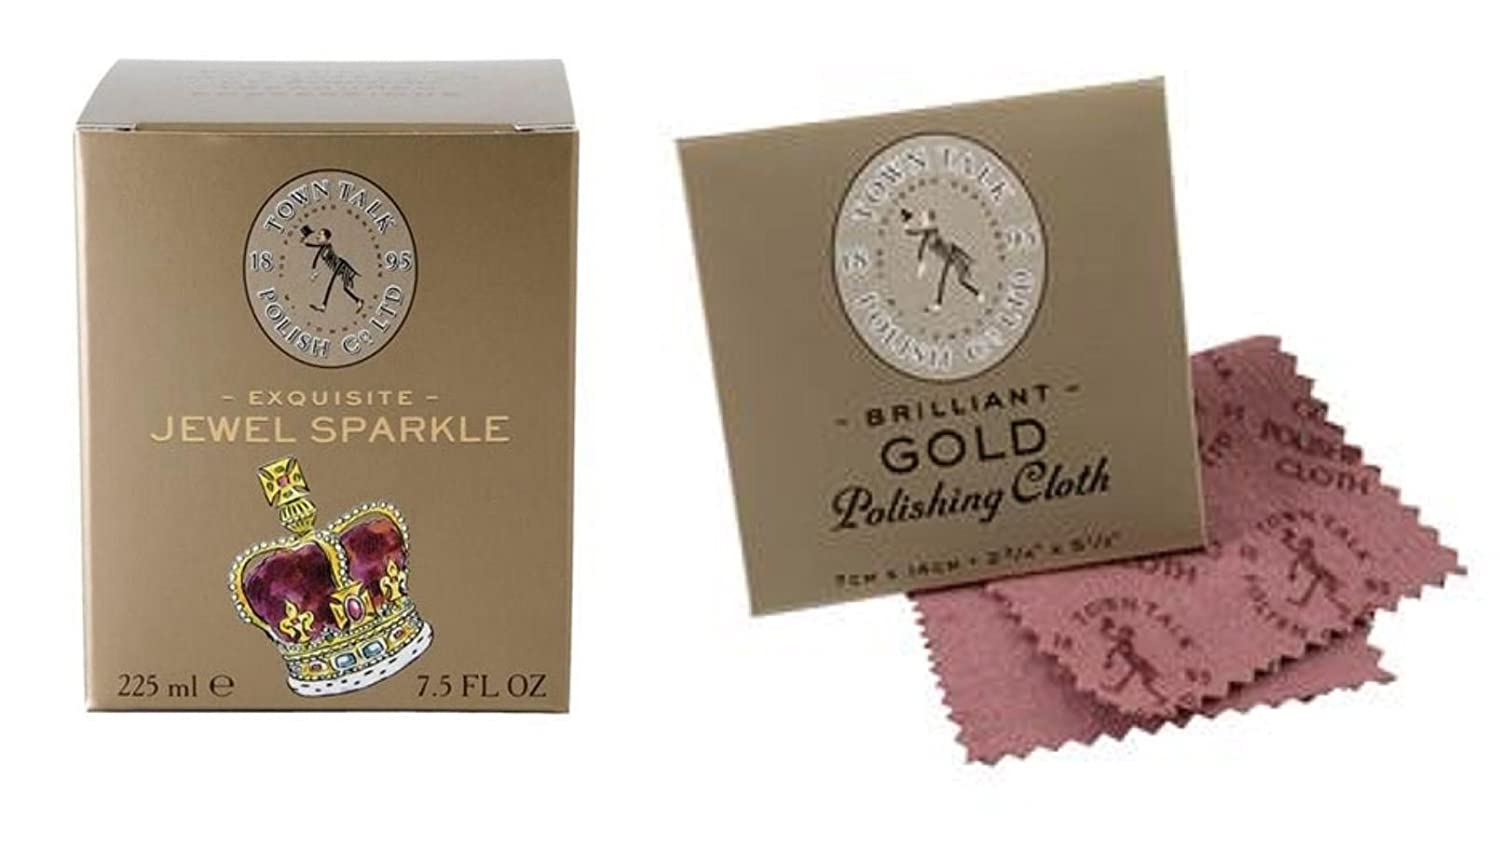 Town Talk Gold Jewellery Bath & Polishing Cloth